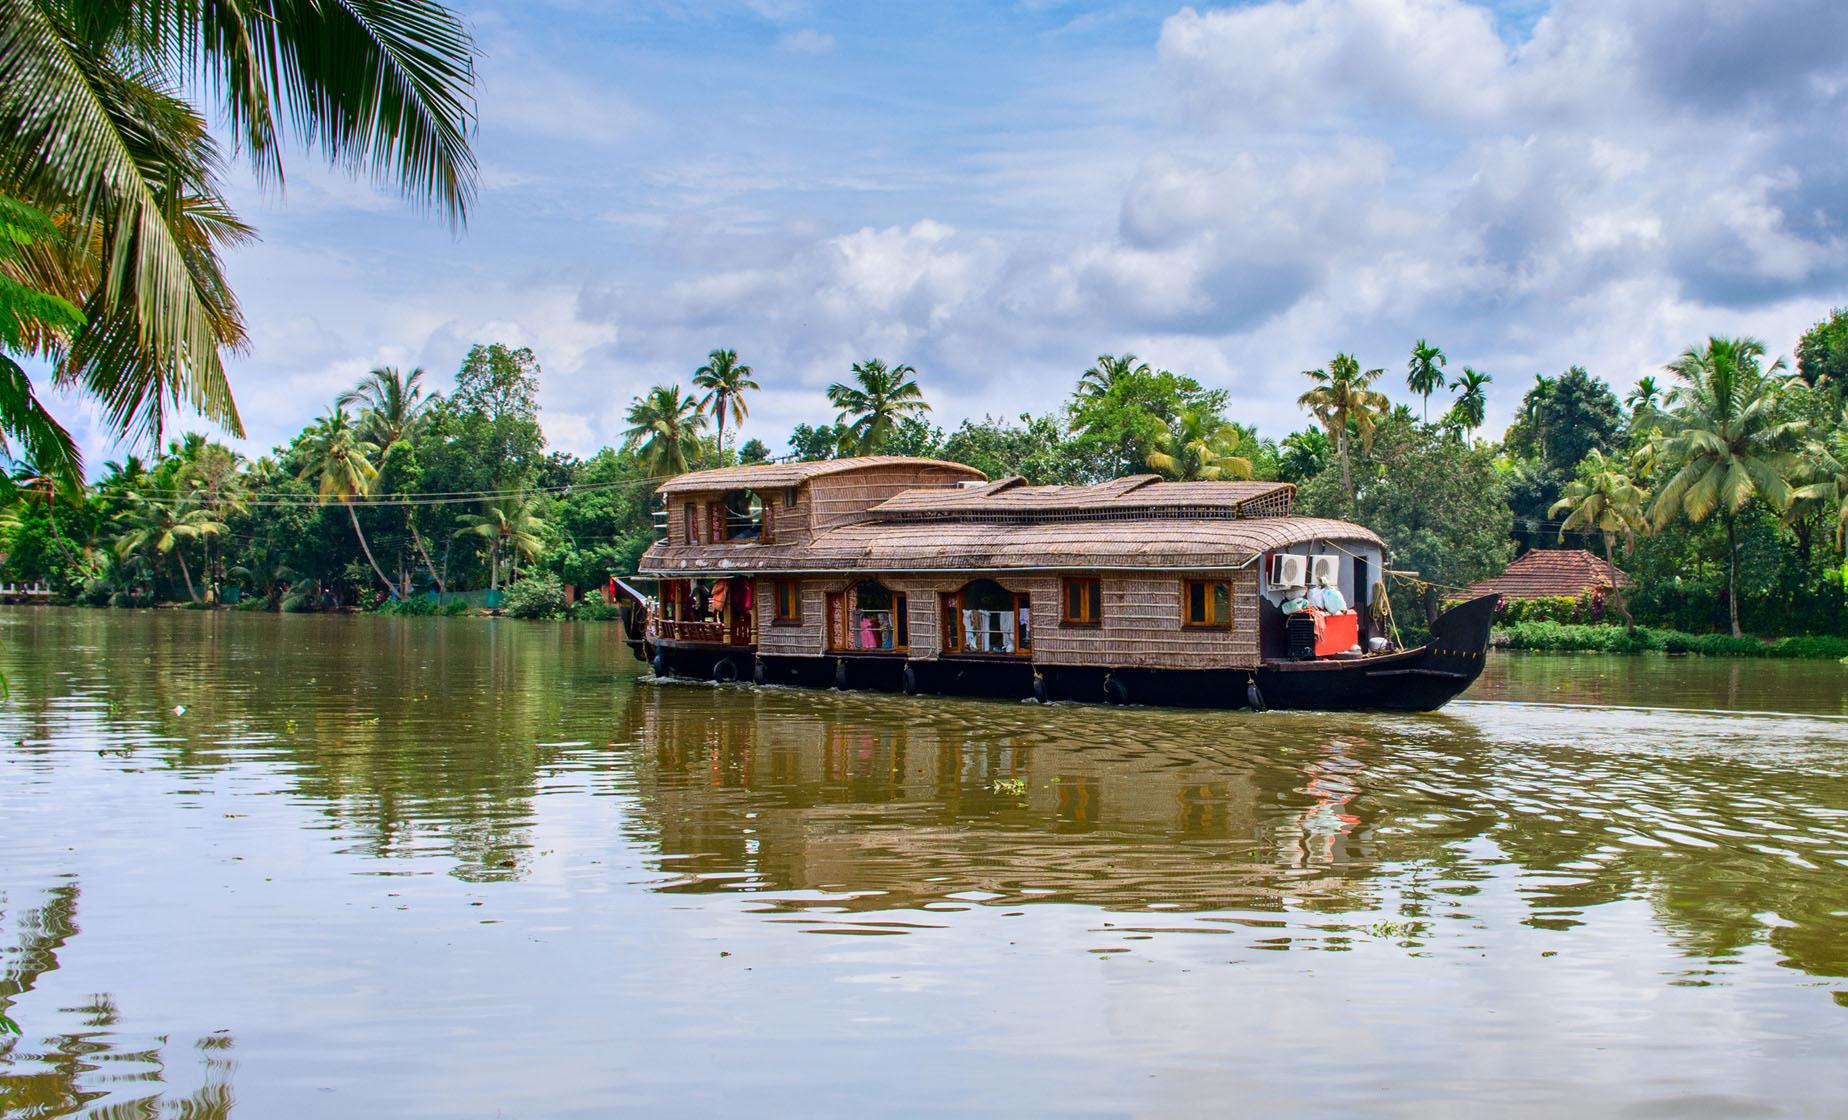 Kerala's Backwaters and Fishing Nets